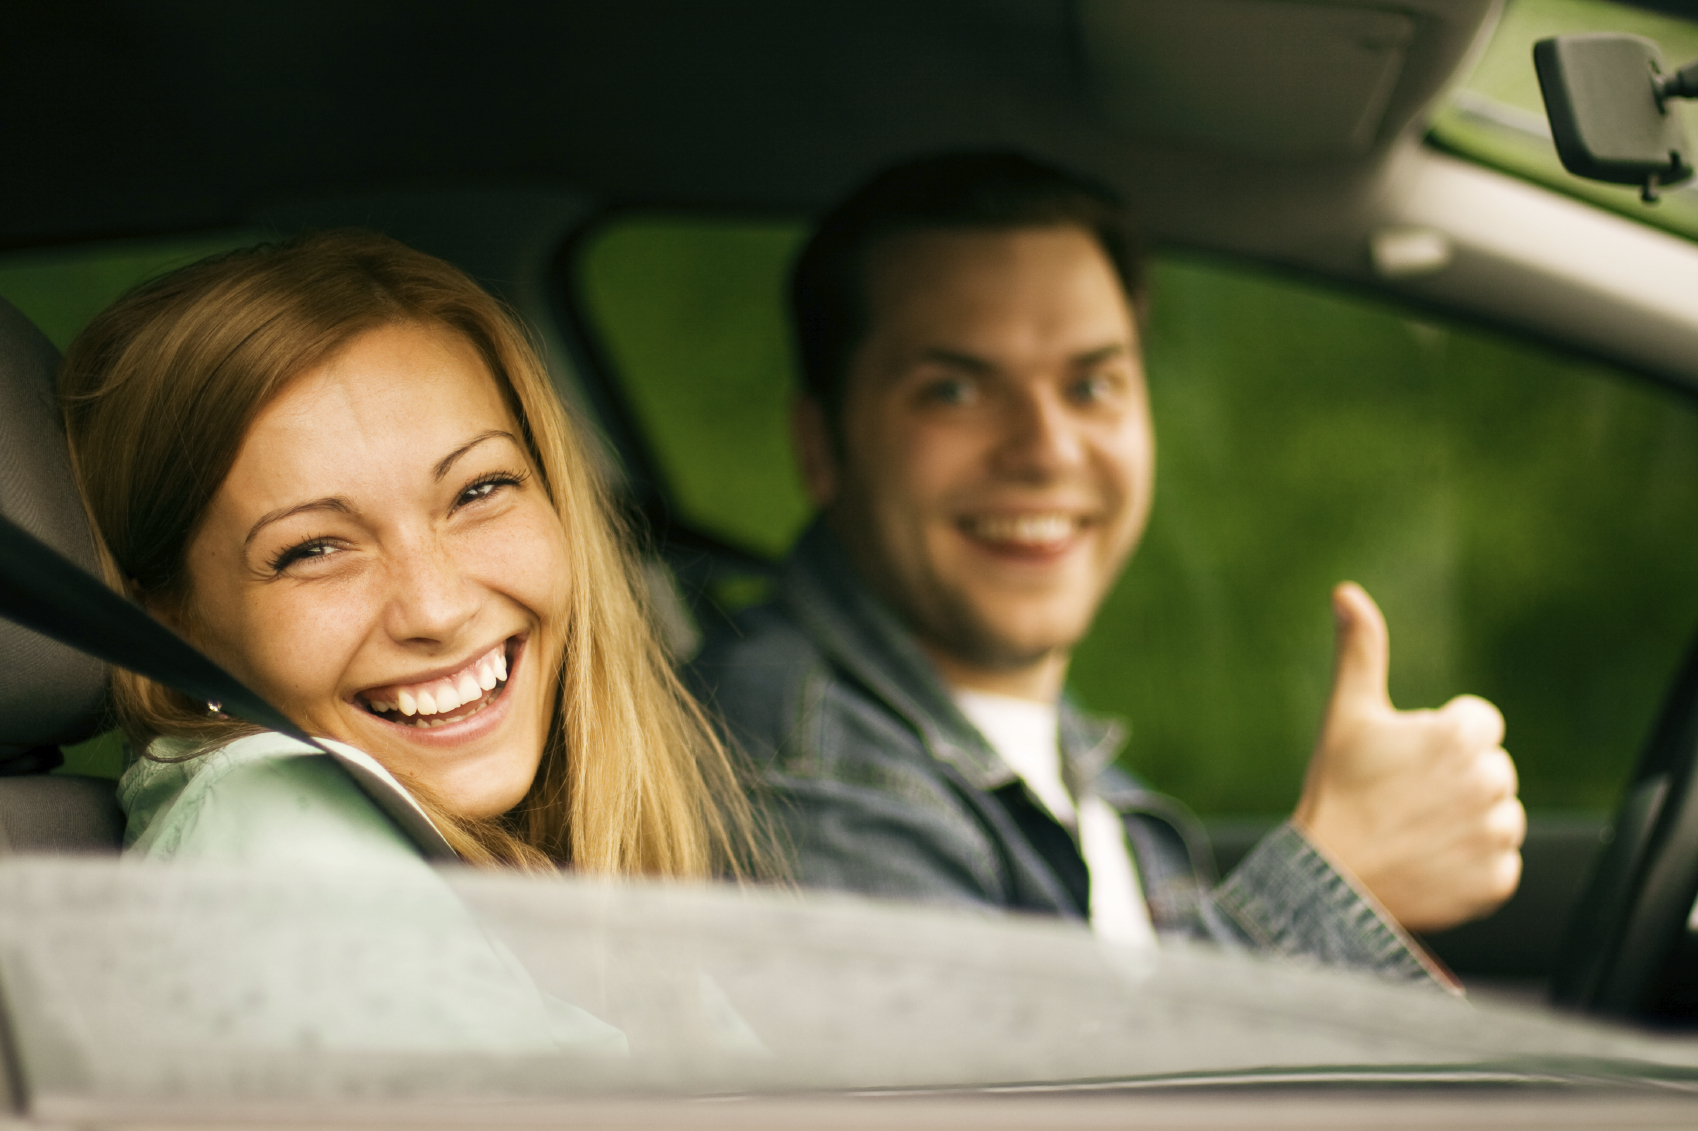 happy-couple-driving-thumbs-up